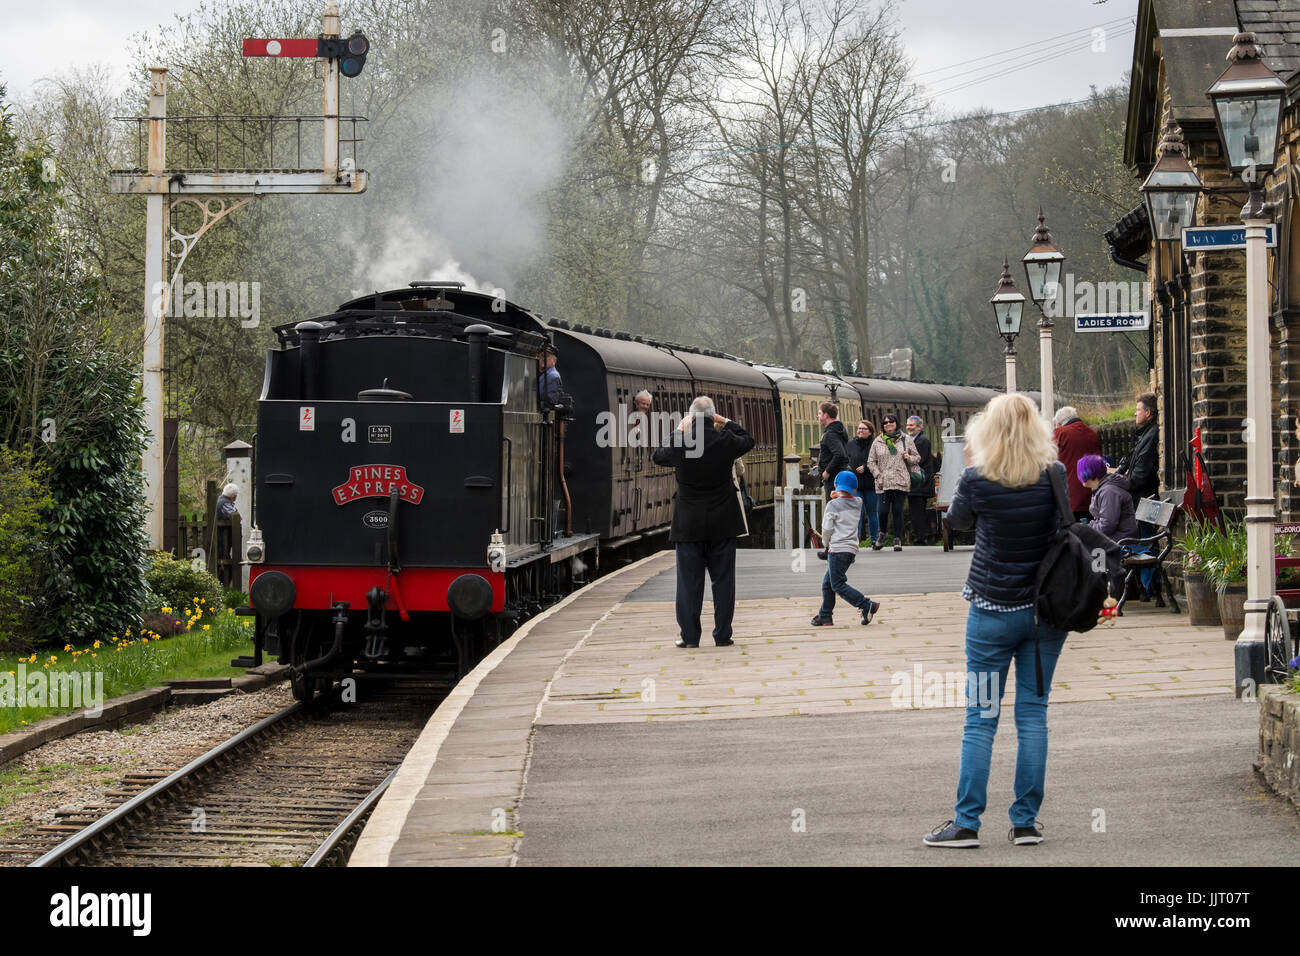 Steam locomotive, BR (Midland Railway) 4F 0-6-0 43924, leaving station, viewed by people on platform - Keighley - Stock Image